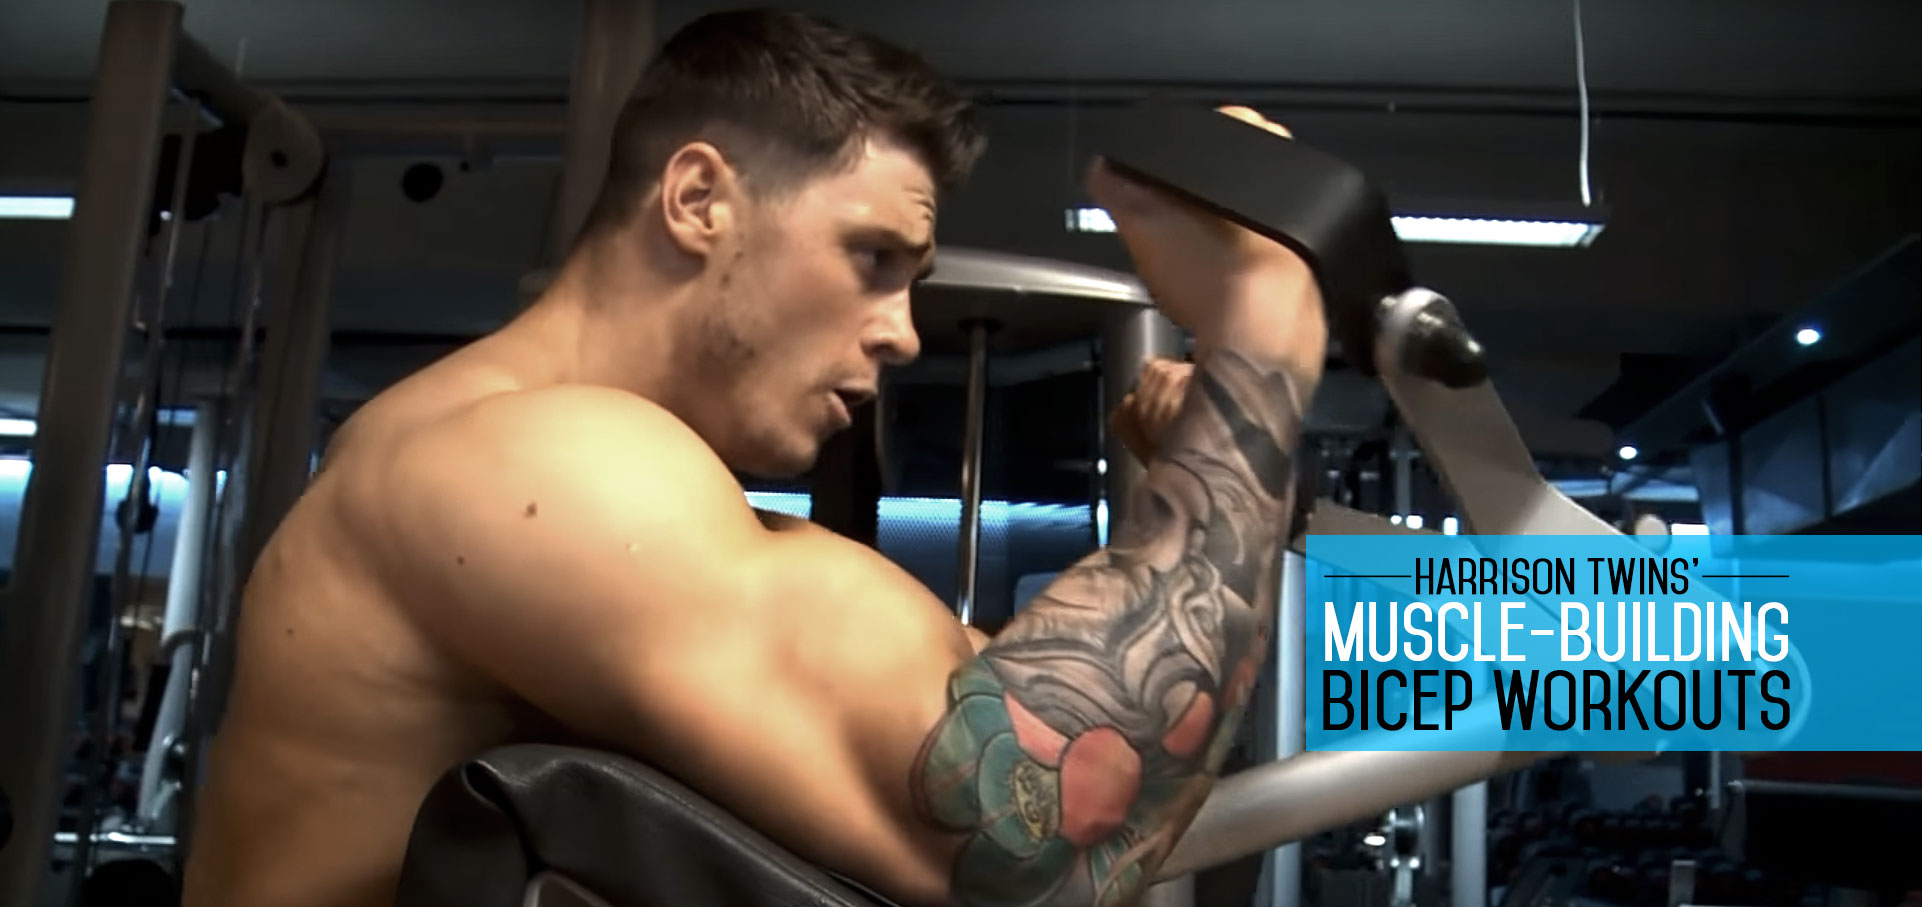 Harrison Twins' biceps workout